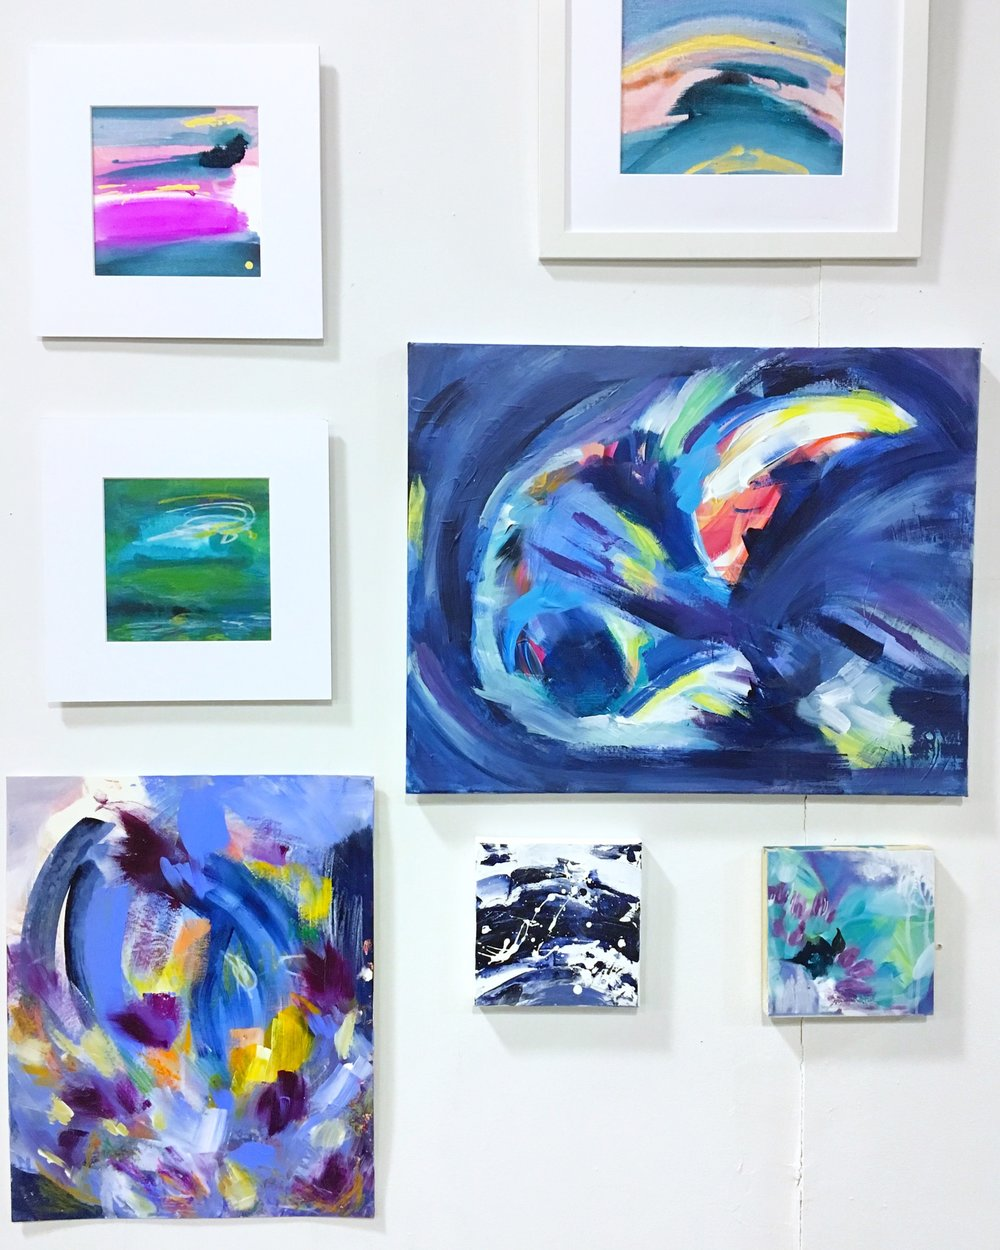 Latest Collection - Of Colorful, Expressive Paintings.Find Your Favorite or Collaborate on Your Own!